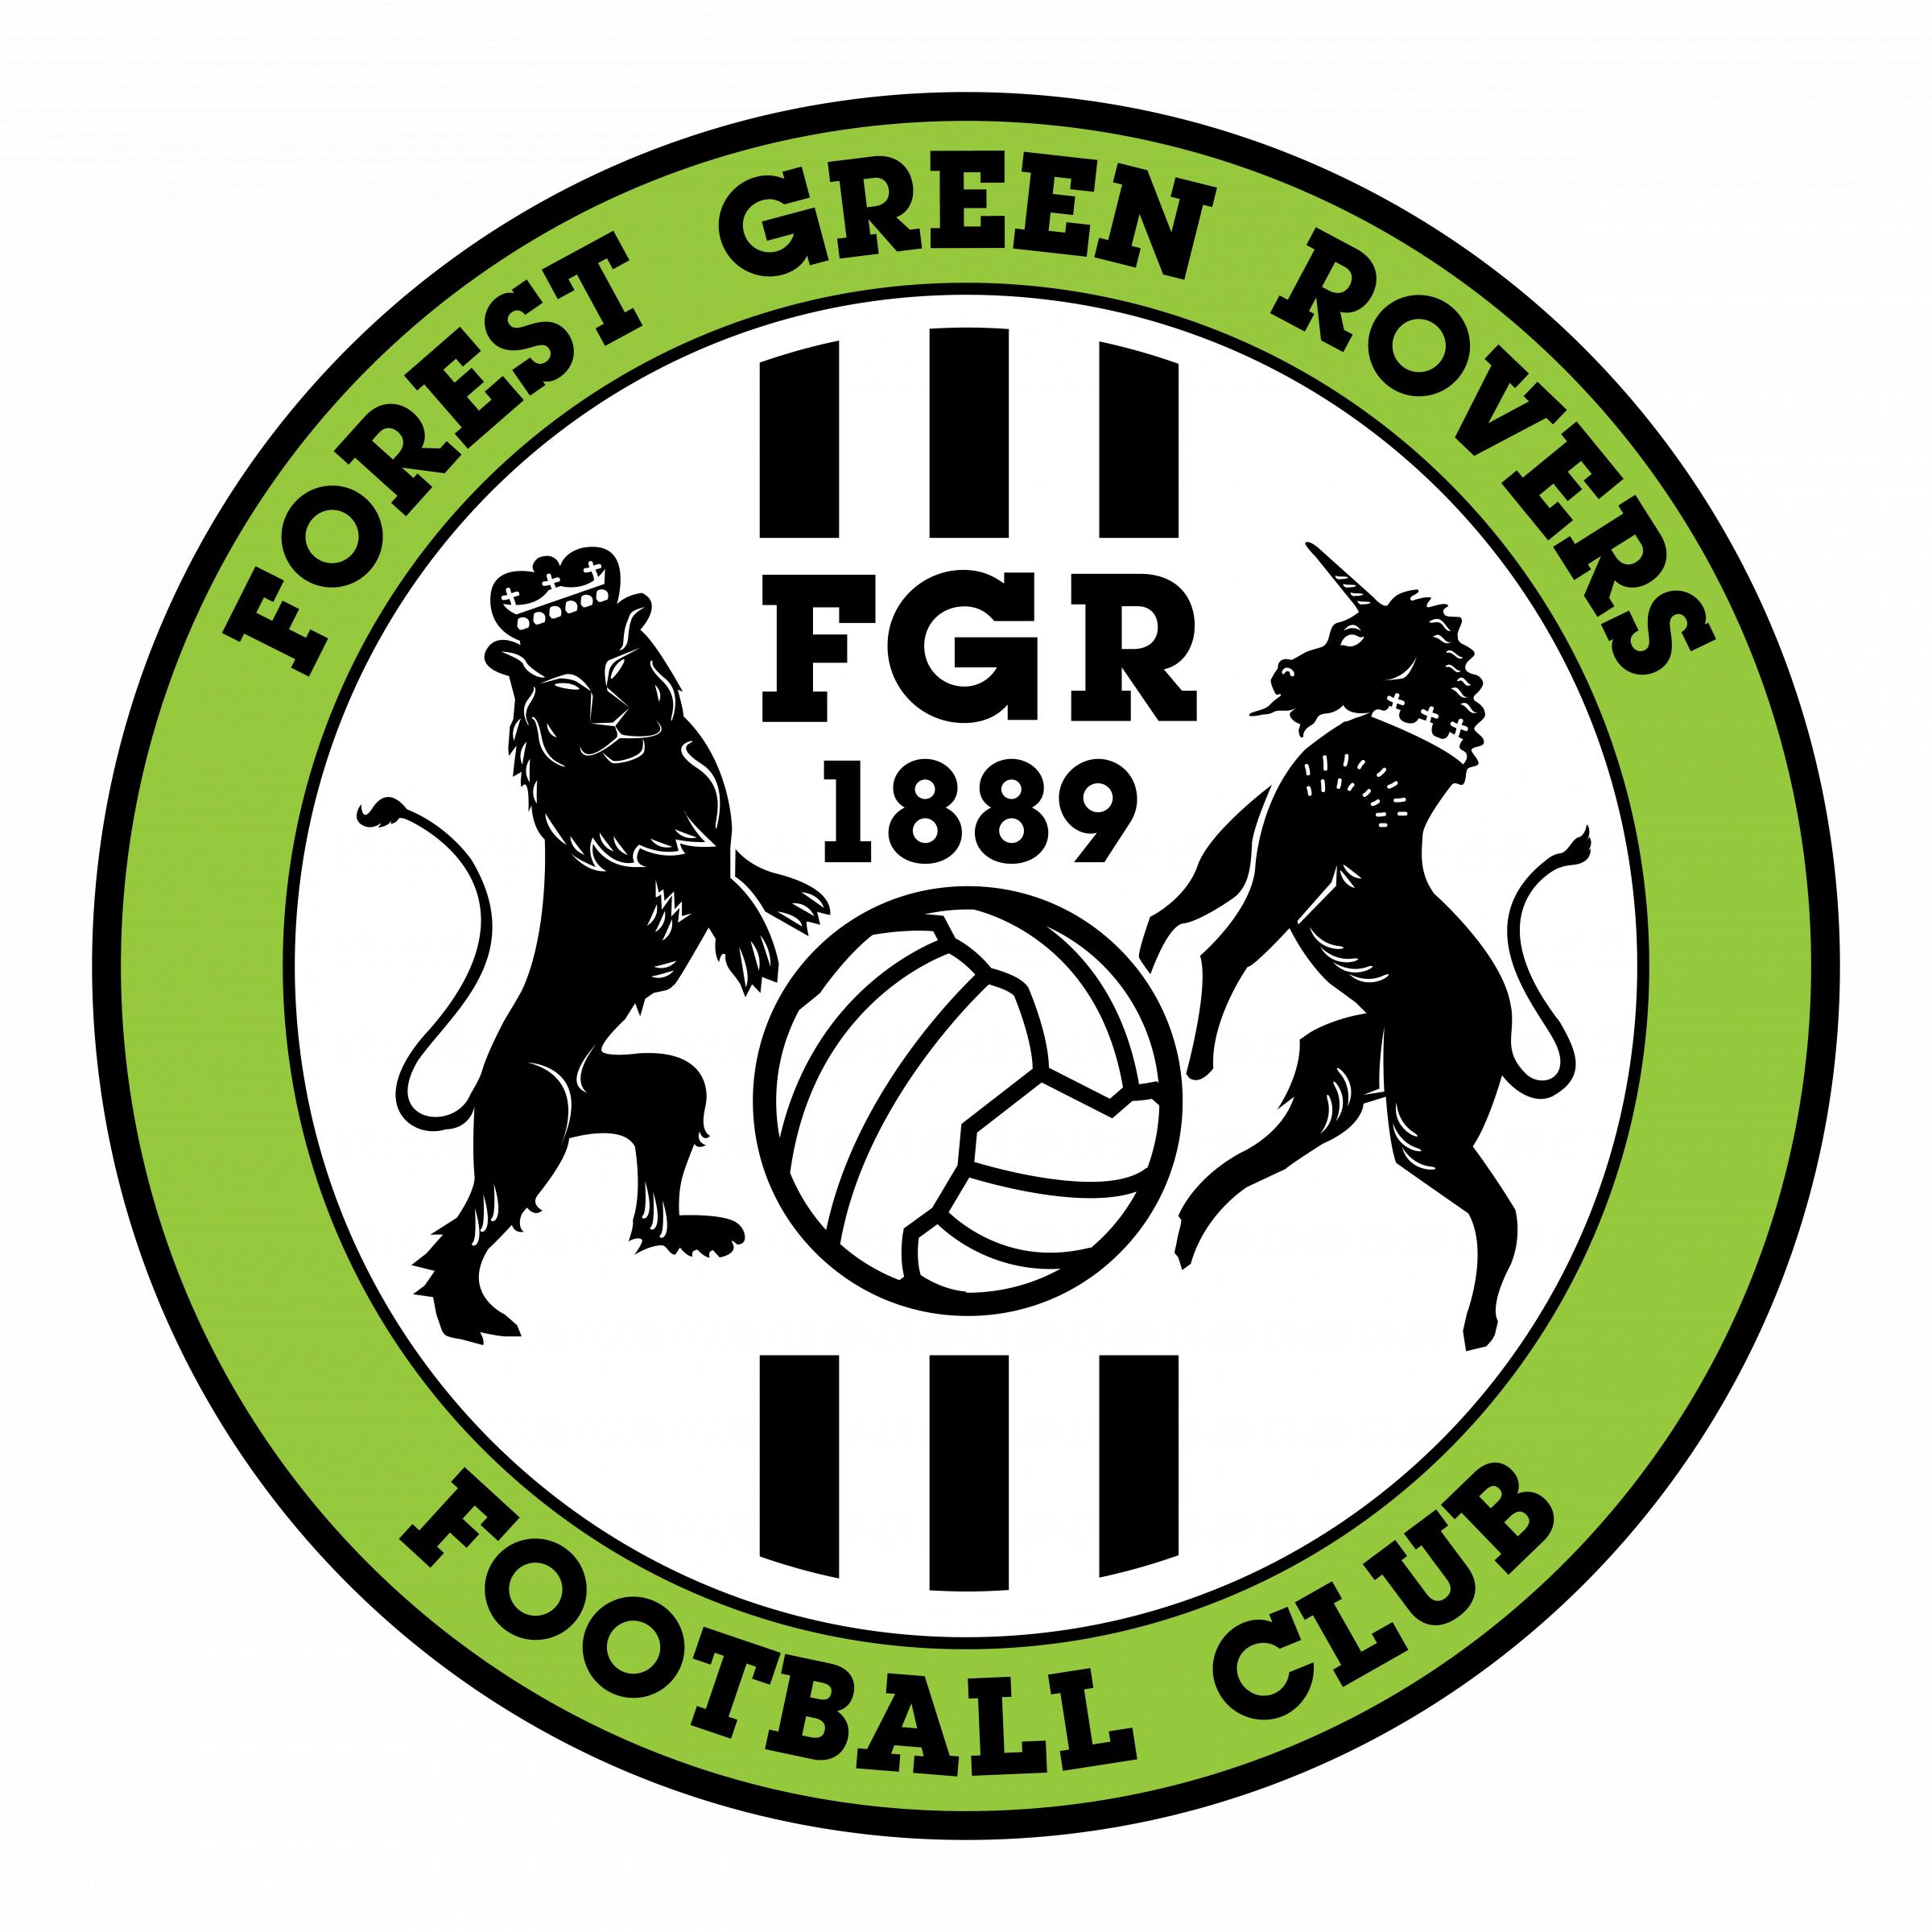 OPPOSITION INSIGHT: Forest Green Rovers